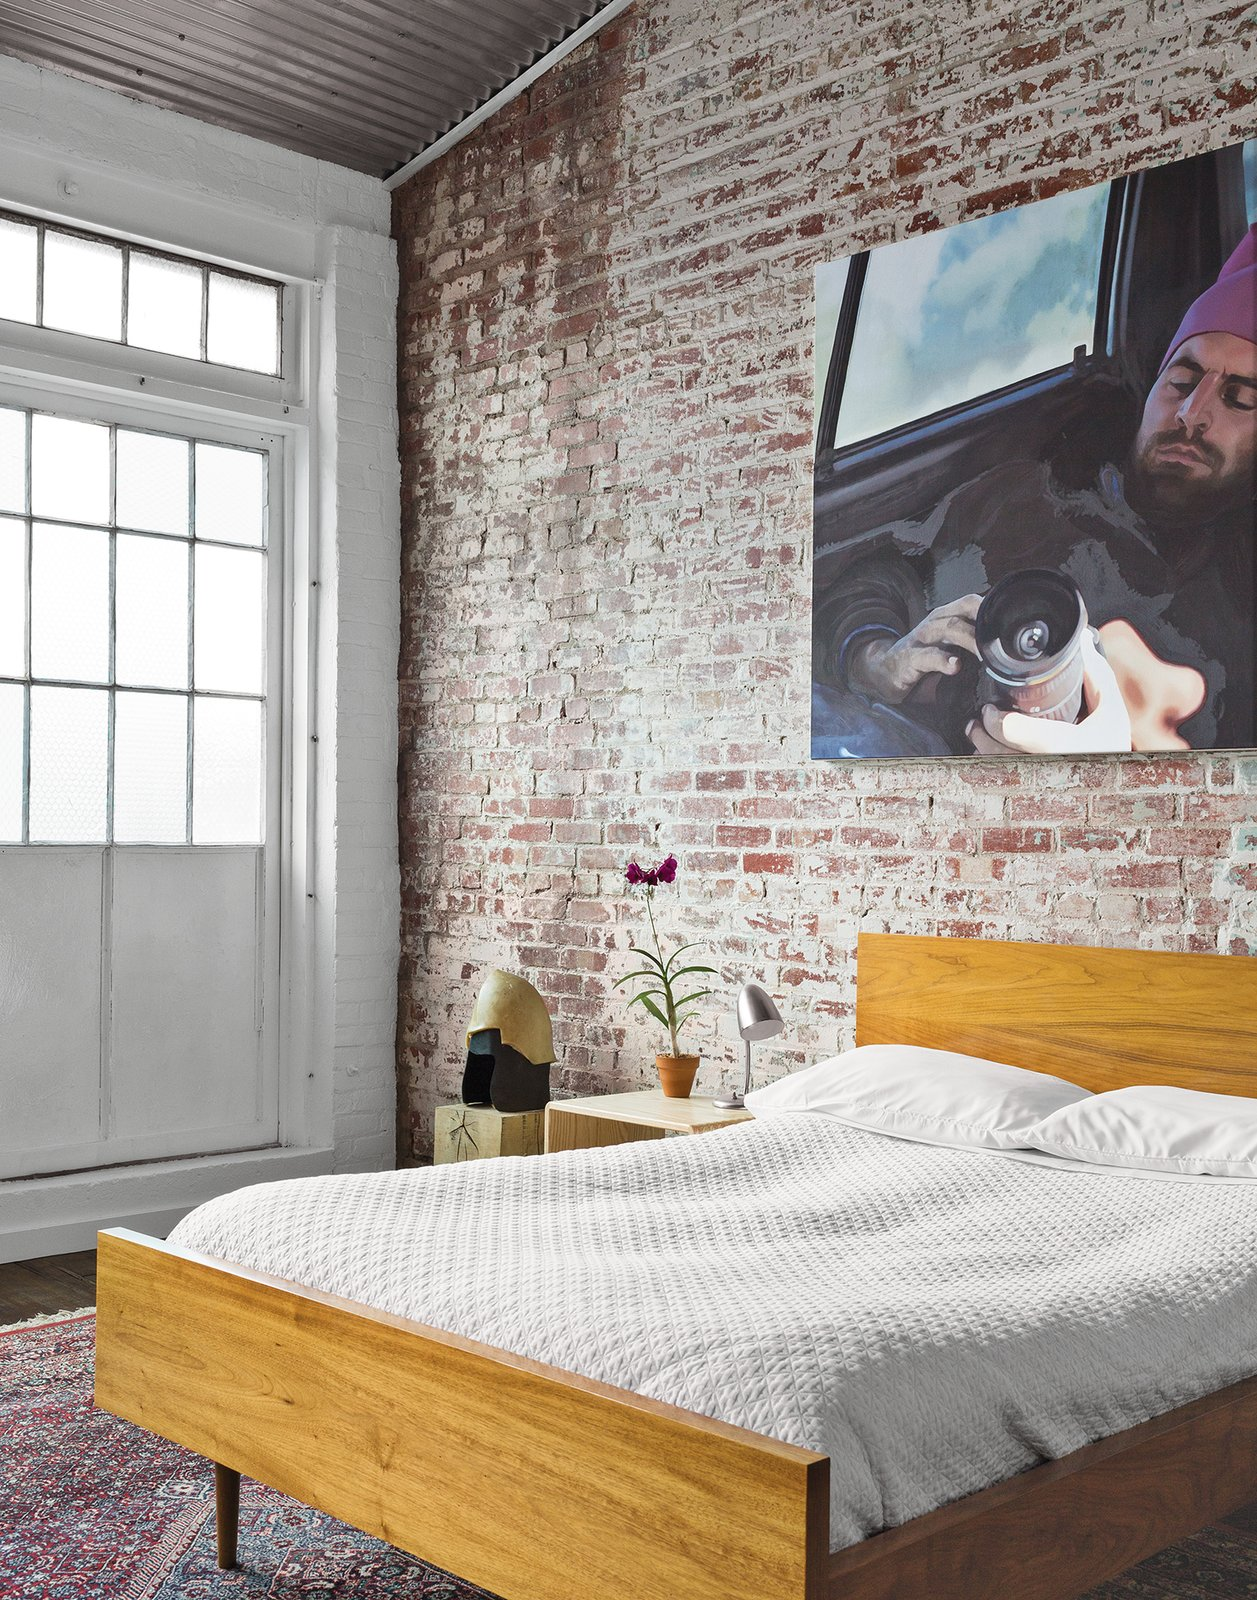 In the guest bedroom, a painting by Monique Crine hangs on the original brick wall above a Miles & May bed and side table. The rug is from ABC Carpet & Home. Tagged: Bedroom and Bed.  20+ Modern Warehouse and Garages Conversions by Zachary Edelson from A Design Duo Takes Over A Whole Factory